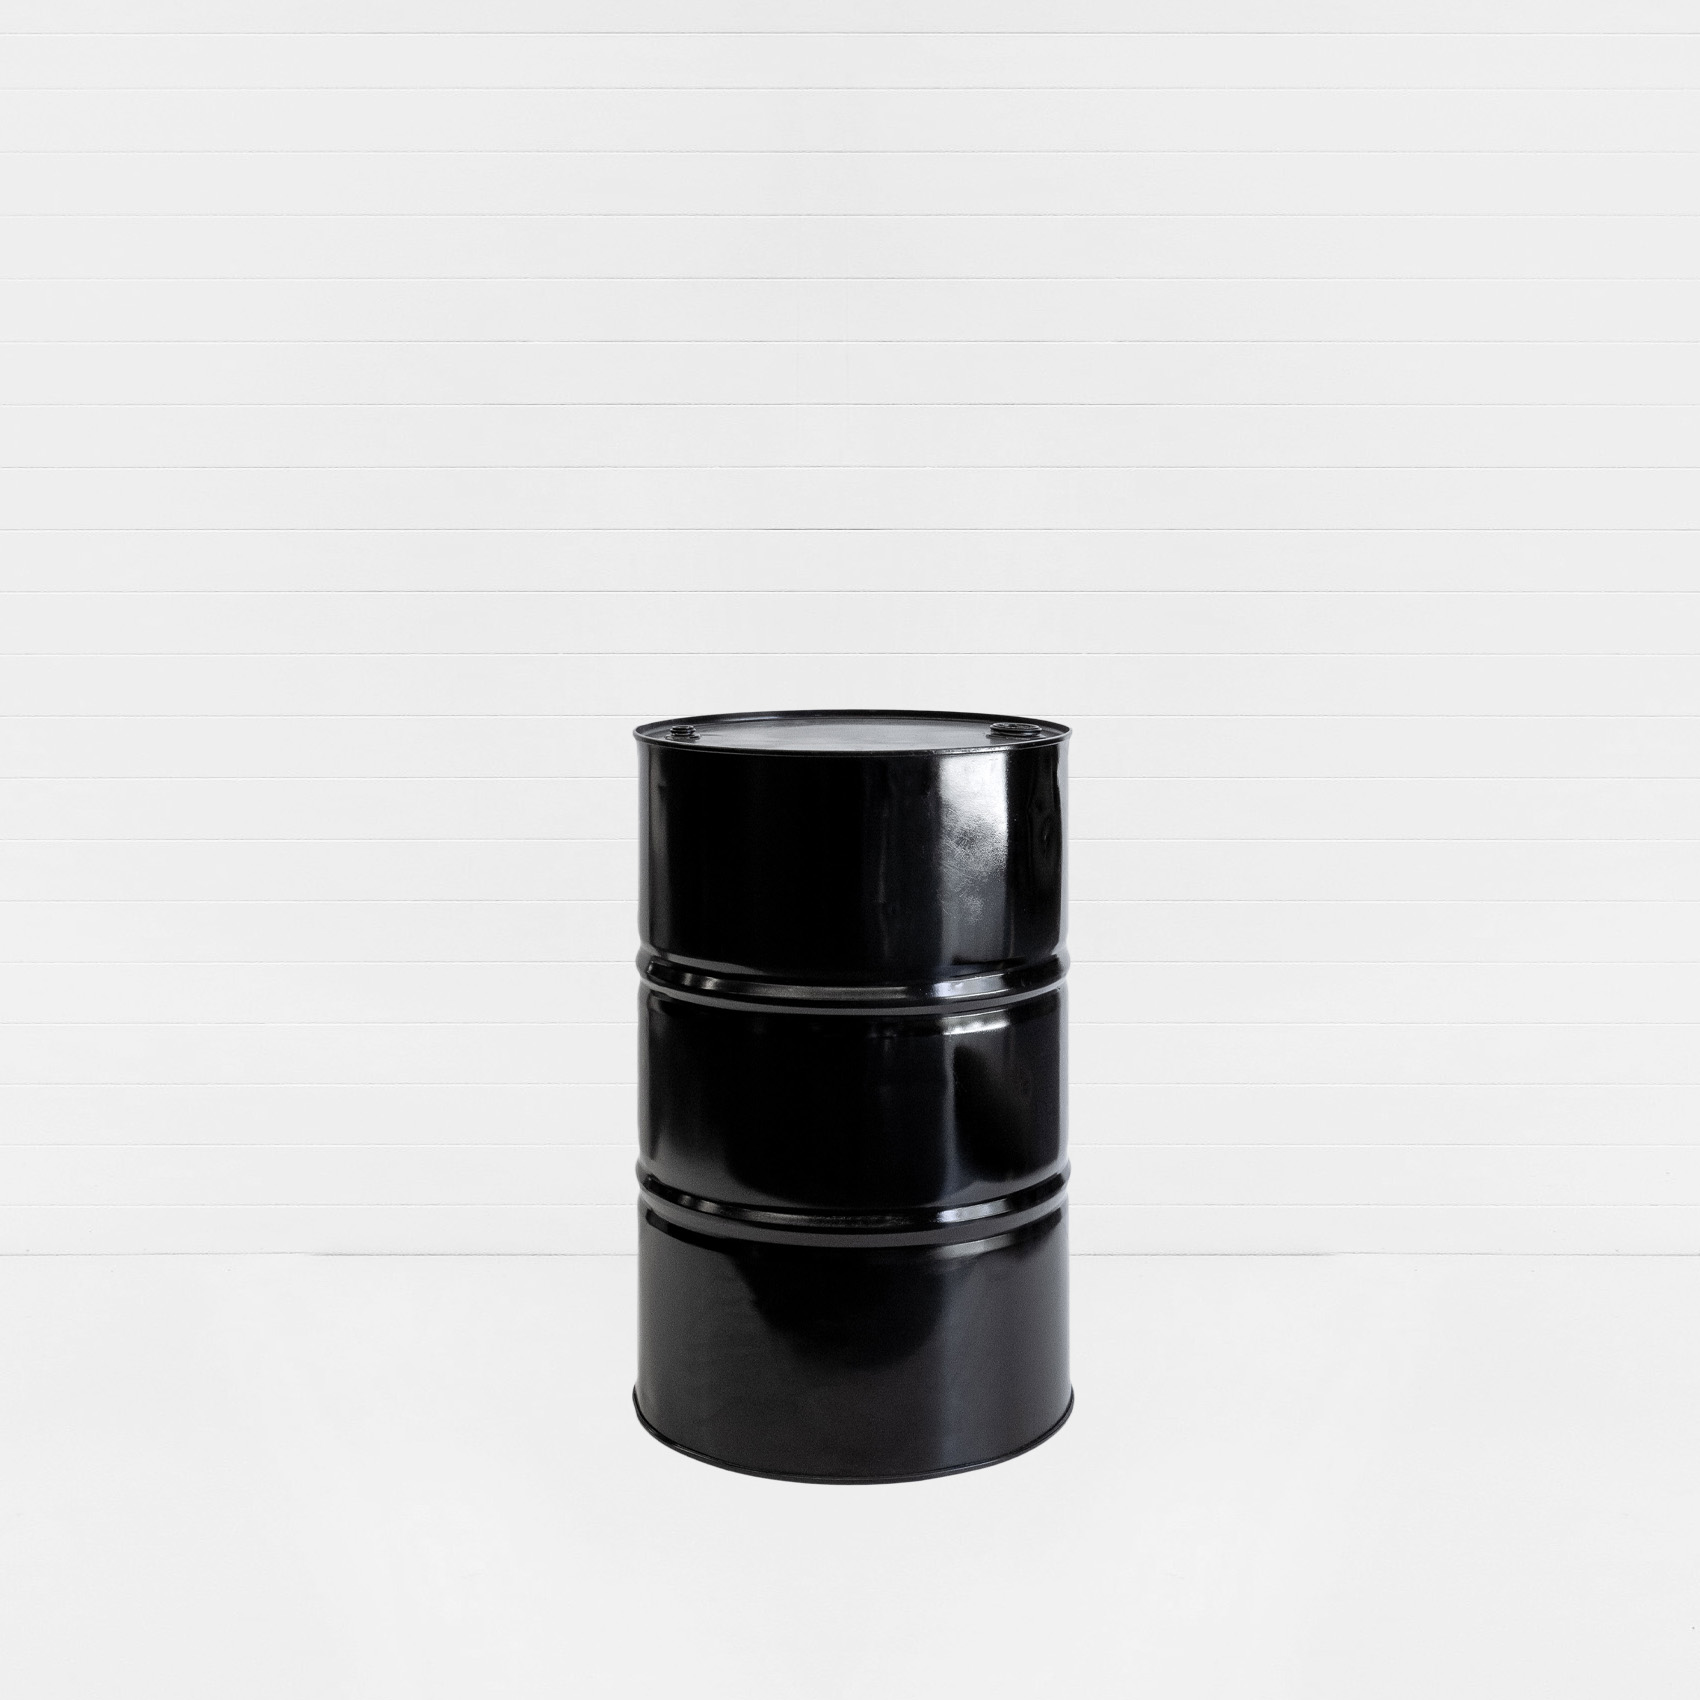 Black Gallon Drum.jpg